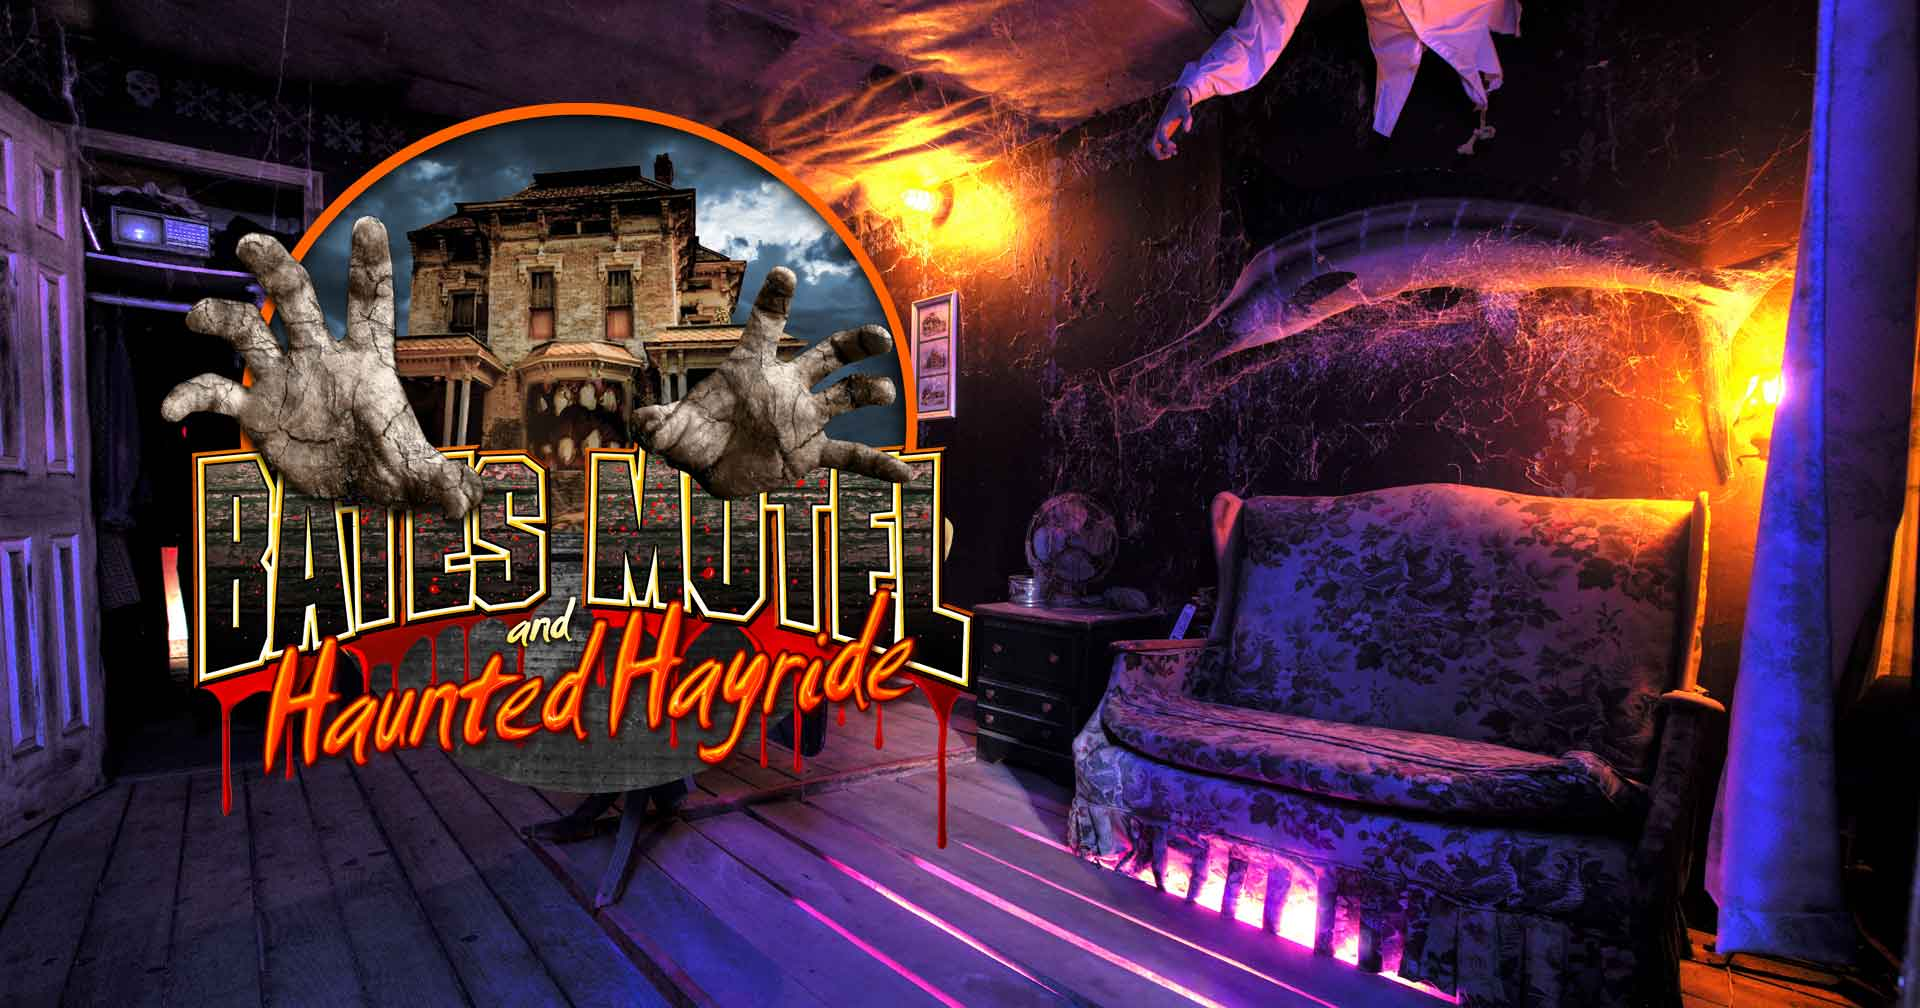 Bates Motel in Glen Mills Makes List of 10 Best Haunted House Attractions in the U.S. for 2019 (see video)